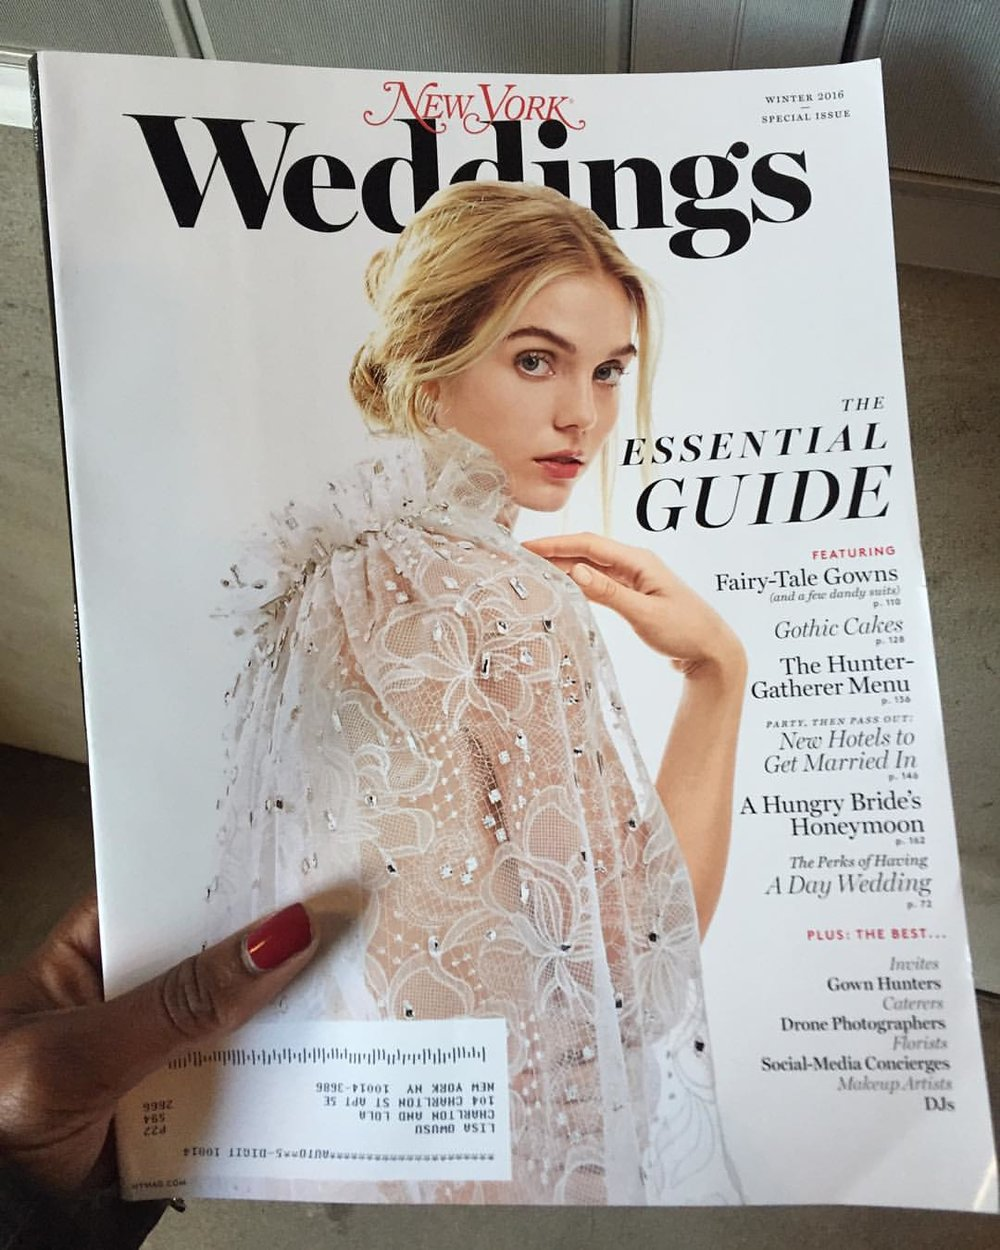 It's heeeeeere!!! At my mailbox. My first ad! Gorgeous cover! @nymag #newyorkweddings Out on newsstands on Monday! Gorgeous! #nybrides #madeinnyc #nycwedding #weddinginspiration #weddingrings #leoooooh #blessed (at New York, New York)